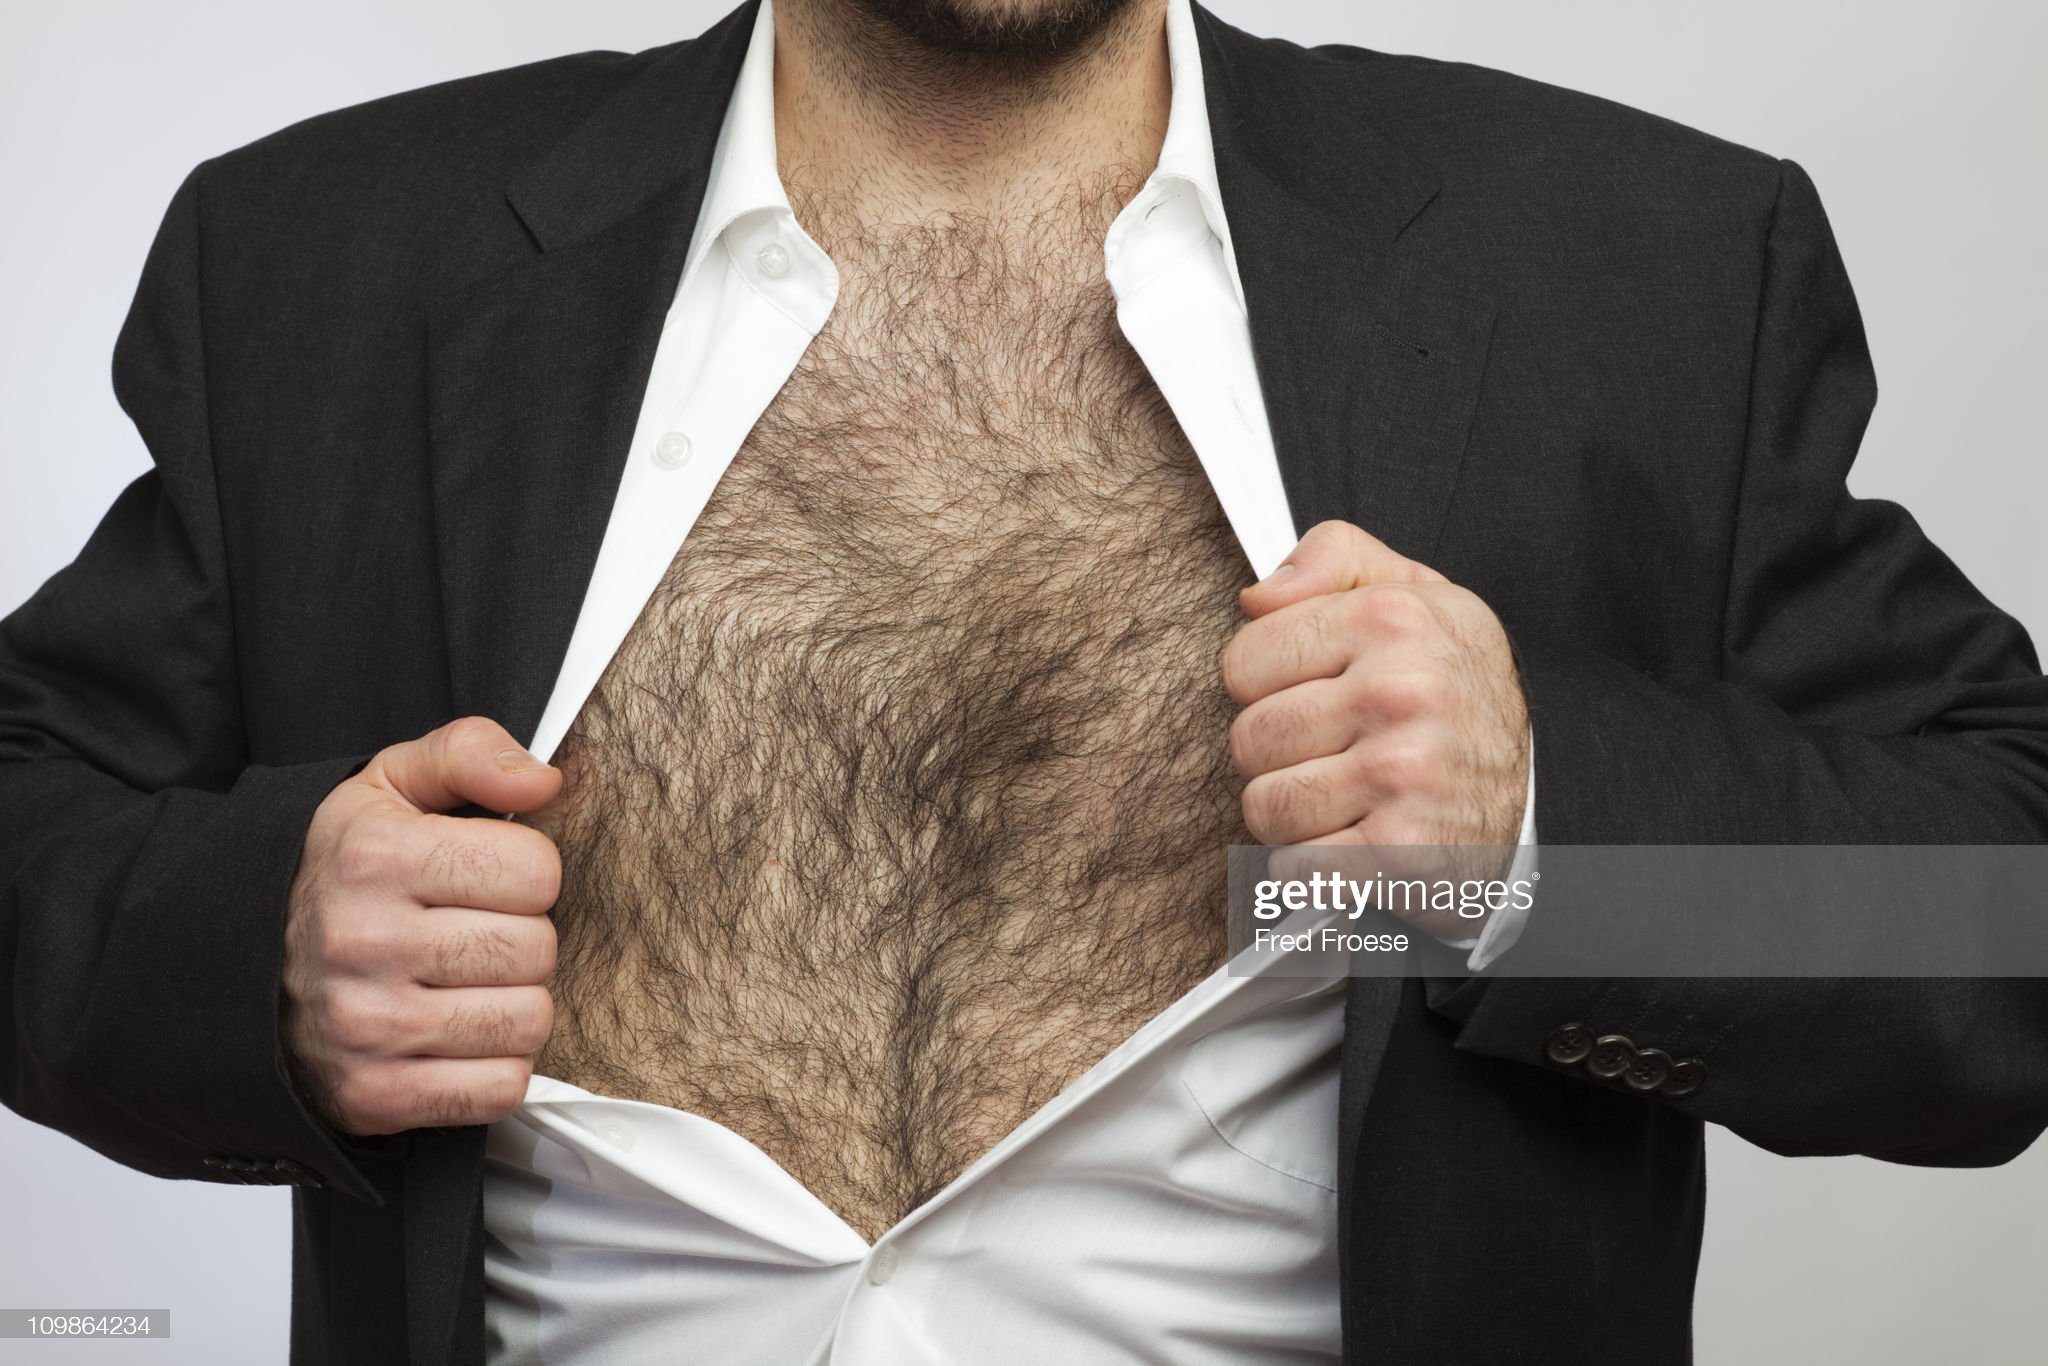 Hairy chested man : Photo